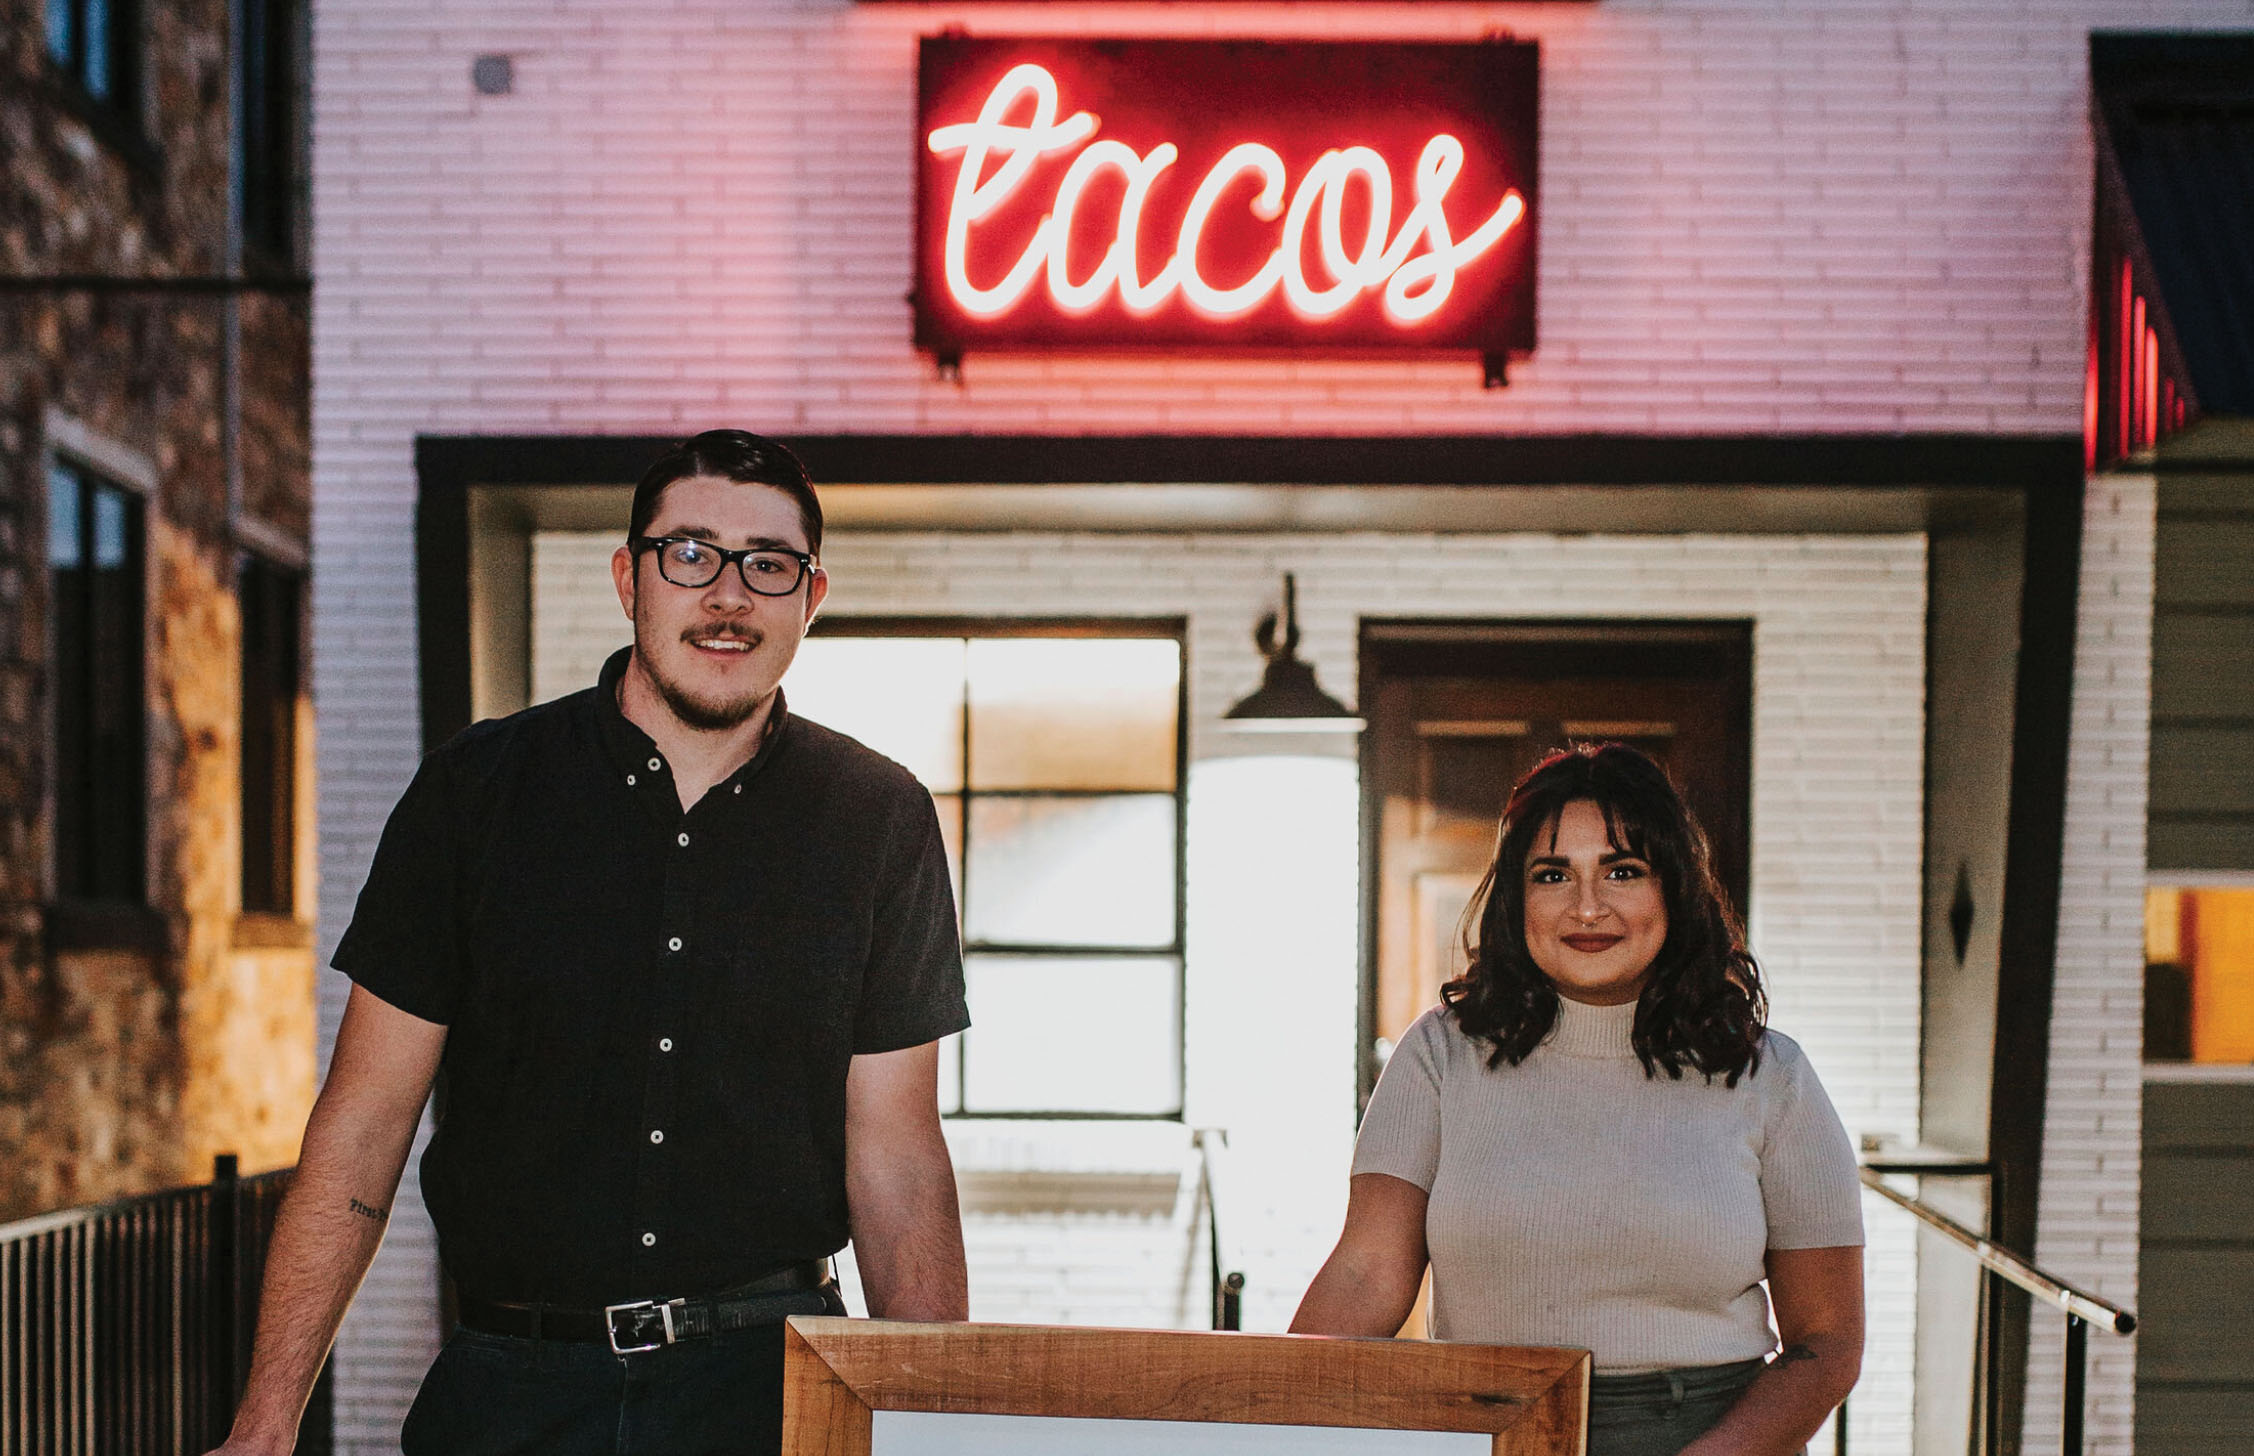 Shane Gowen, pictured left, and his wife, Aurelia Gowen, pictured right, recently opened a taco restaurant in Jacksonville called Heirloom Taco. The restaurant is located in the Jacksonville Public Square where a fire station once was. (Courtesy of Heirloom Taco)